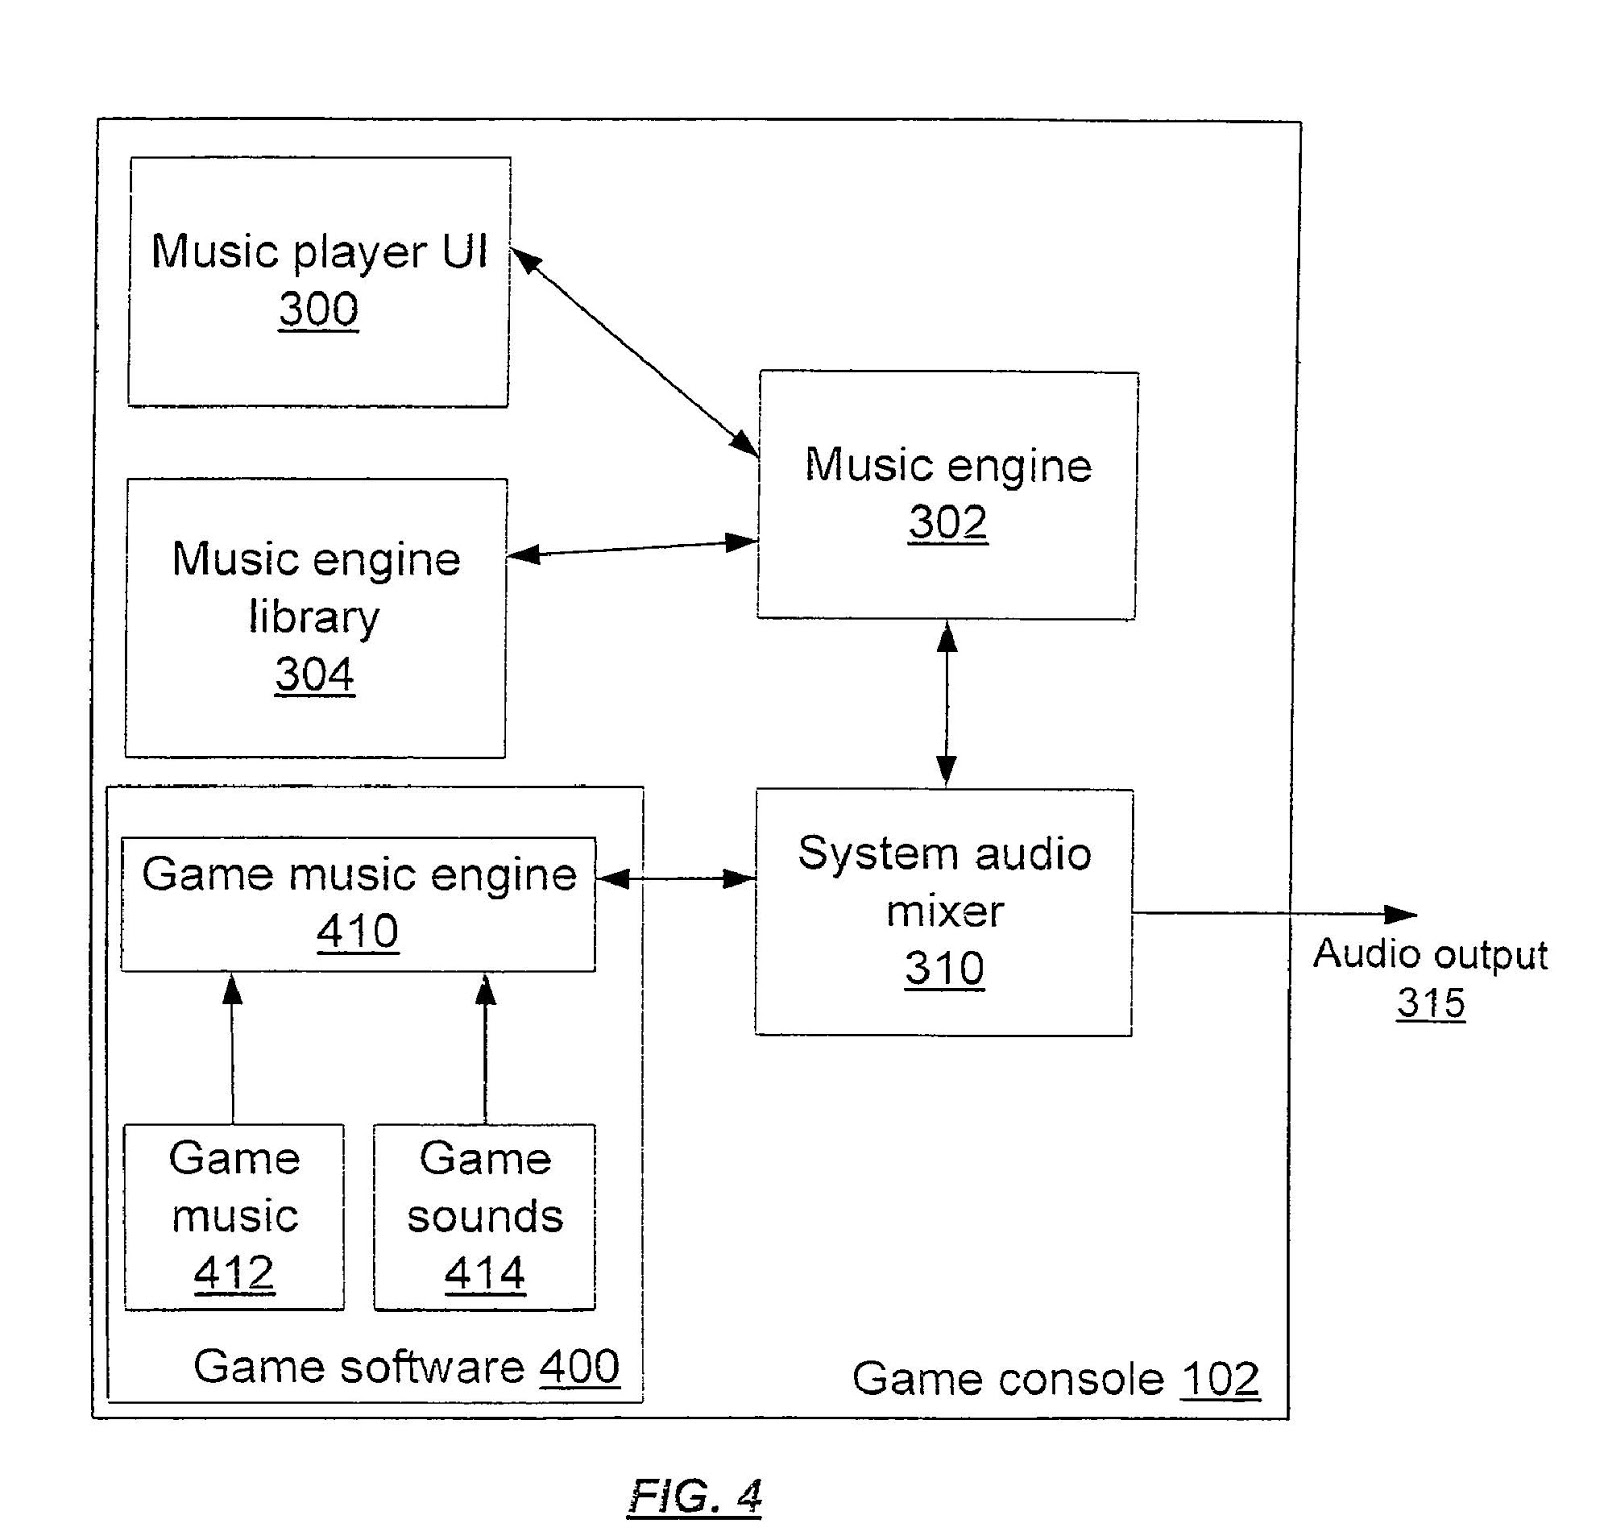 U S  Patent No  7,663,045: Music replacement in a gaming